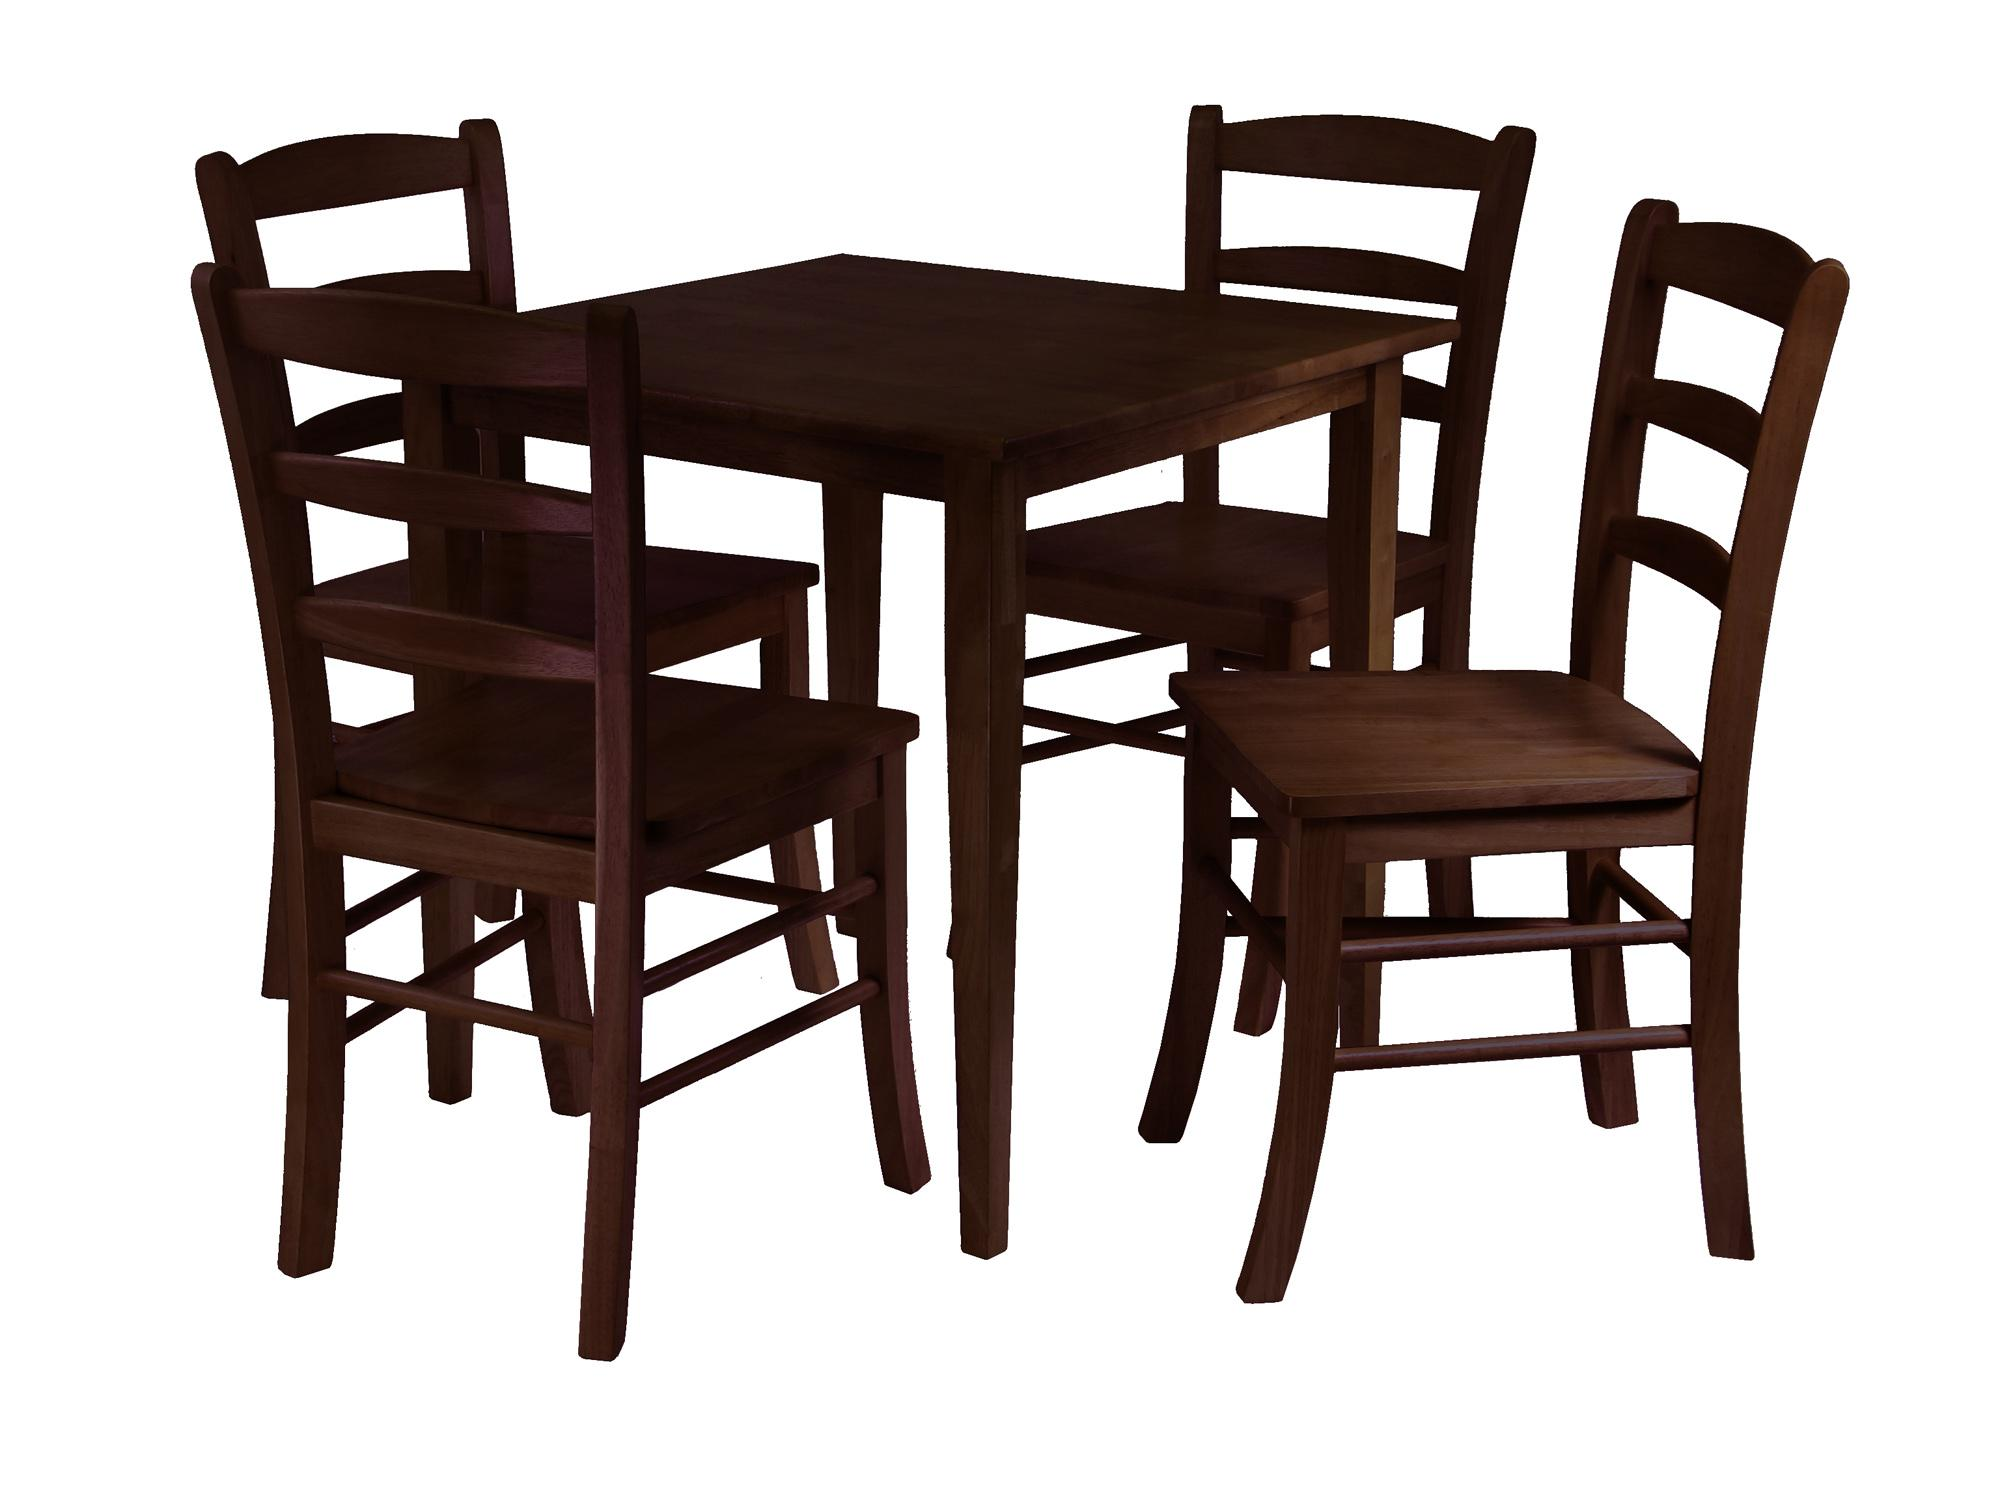 dining chair sets of 4 leather chairs modern furniture home goods appliances athletic gear fitness